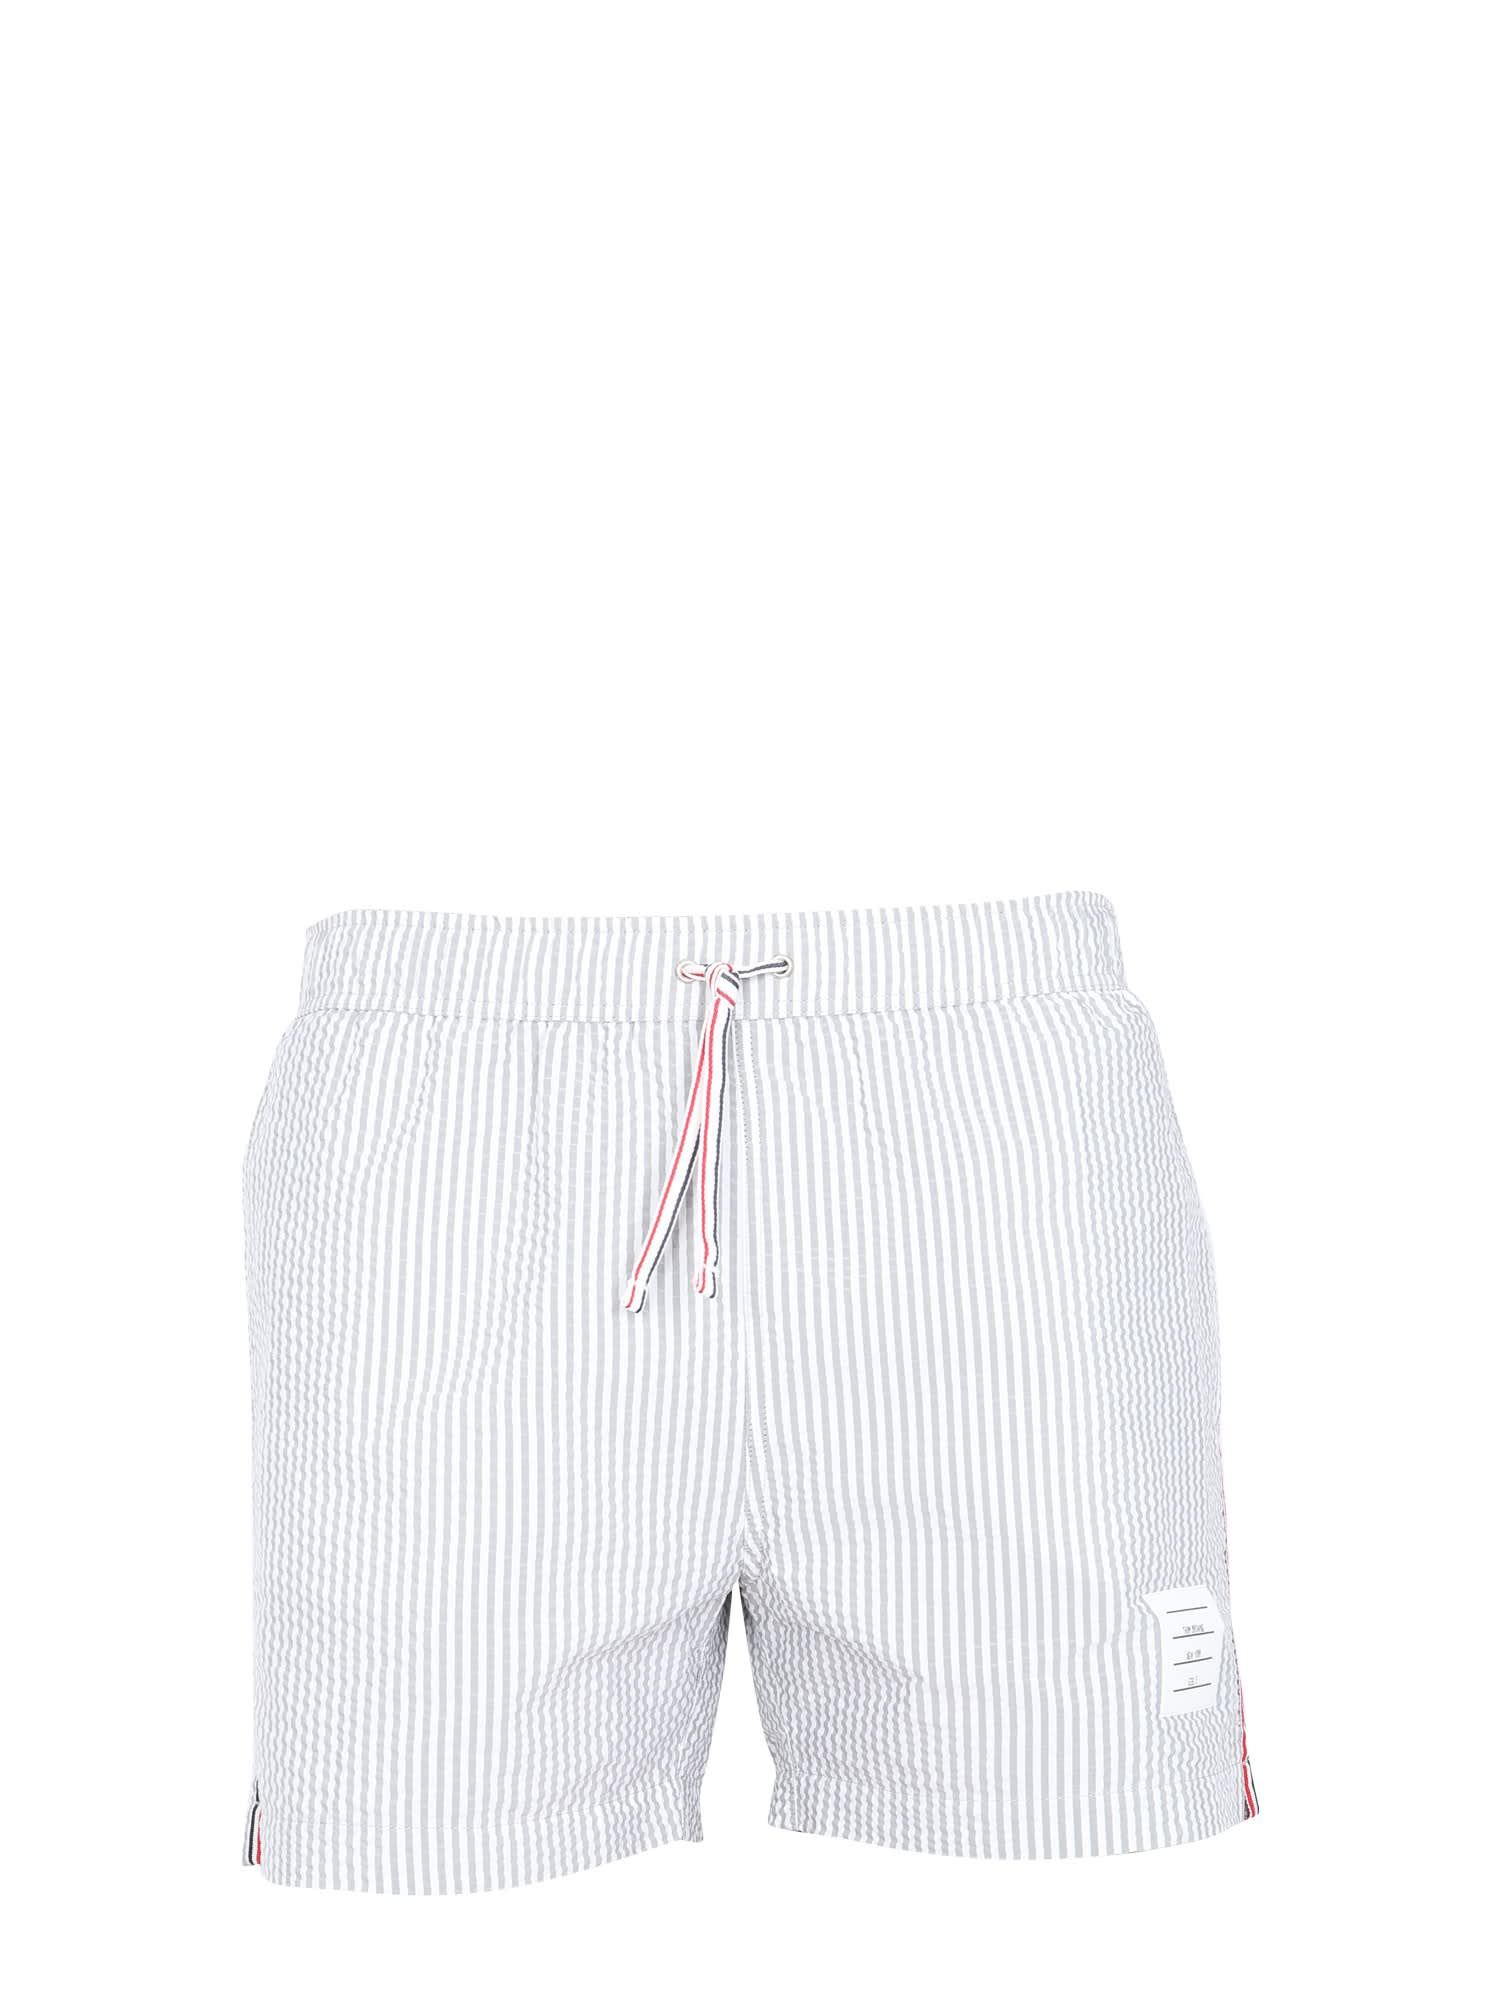 Thom Browne Shorts BOXER SWIMSUIT